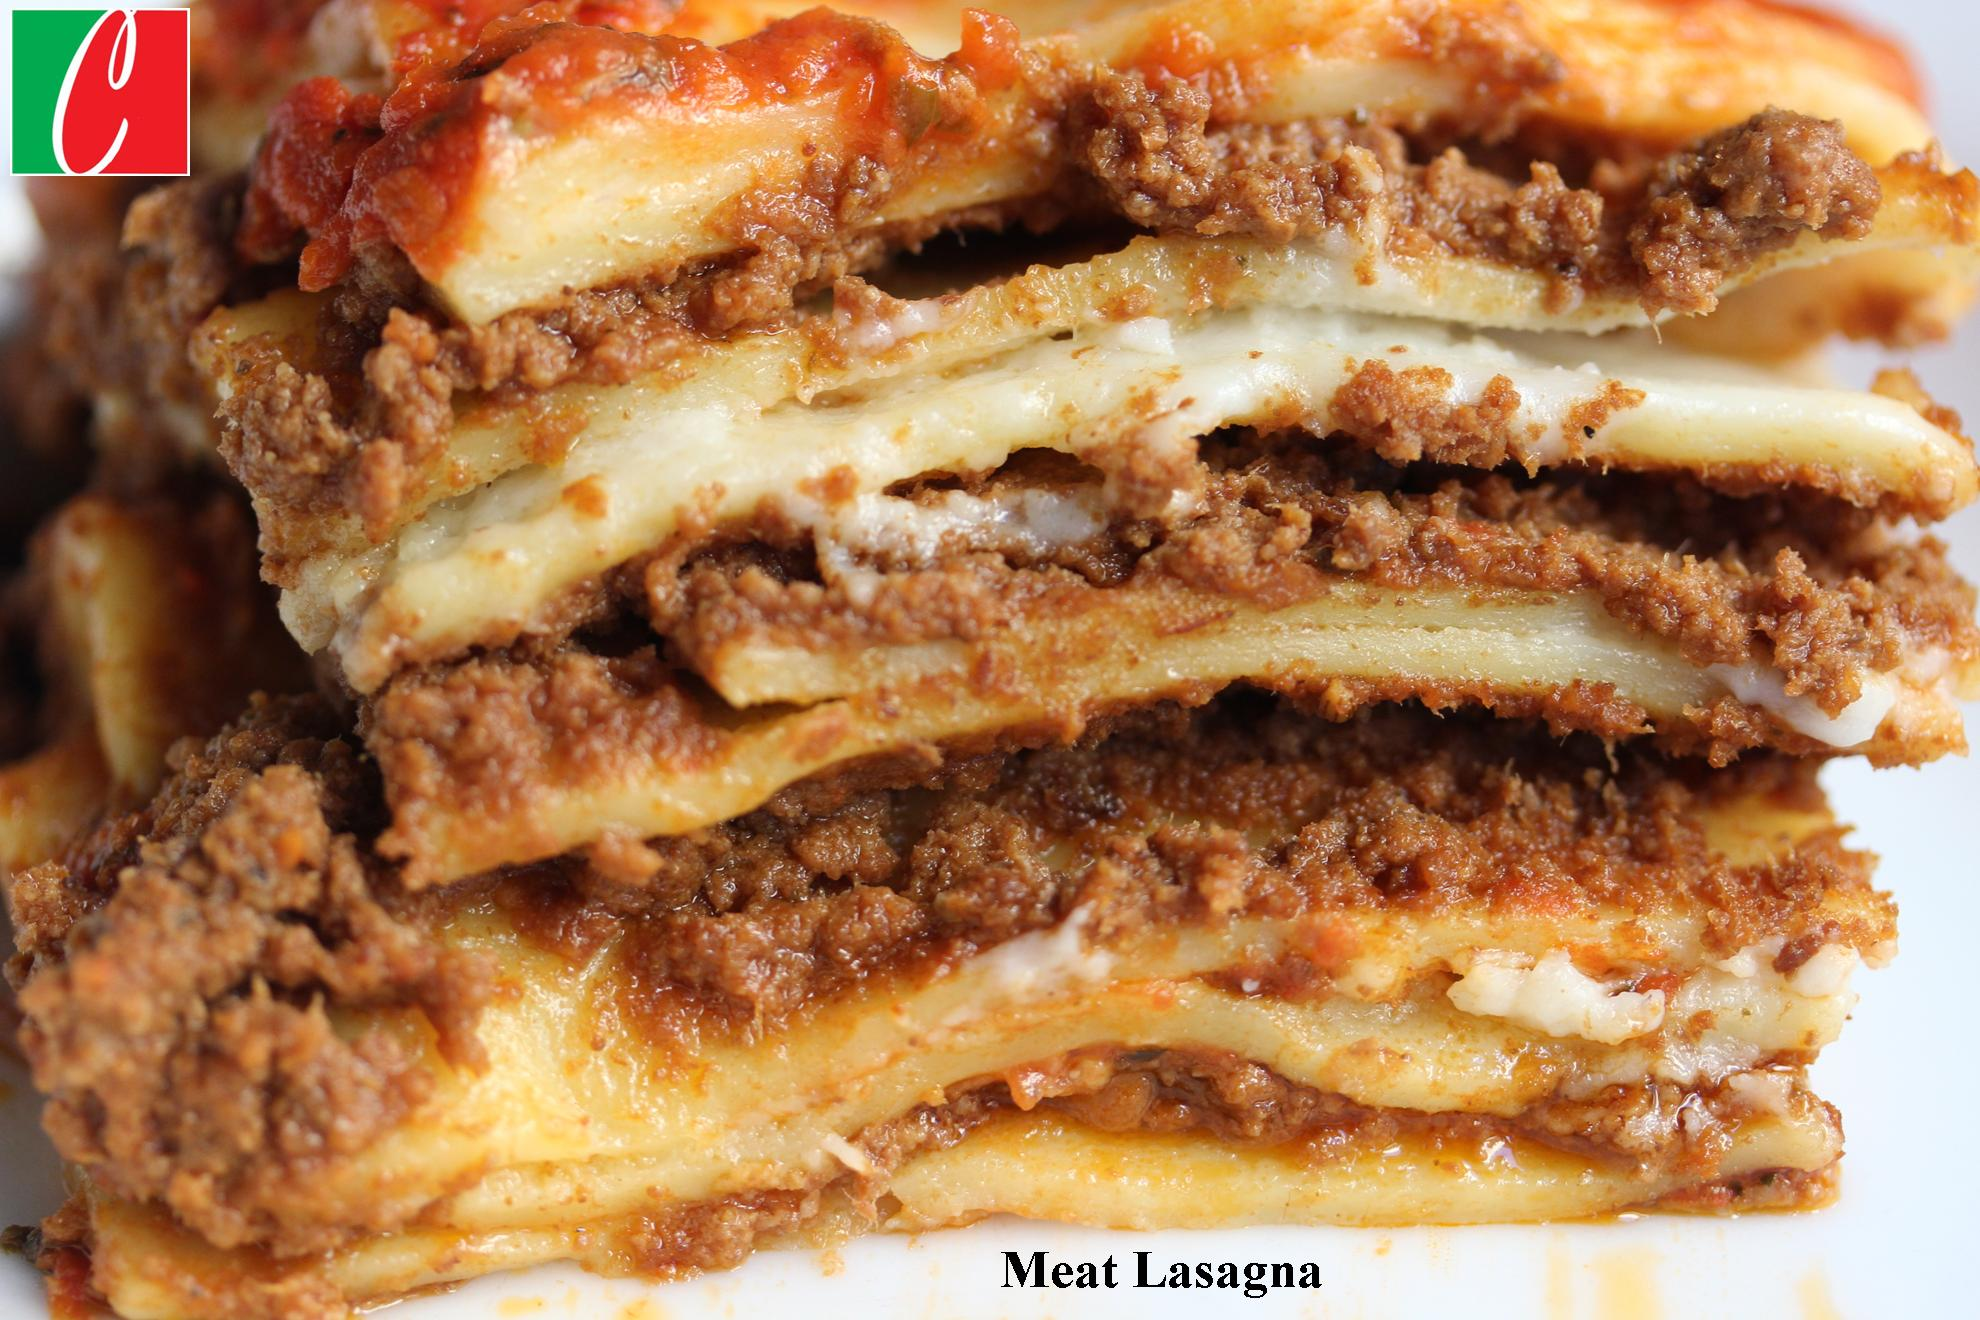 Traditional Meat  Lasagna - Half Pan serves 8 - 10 people